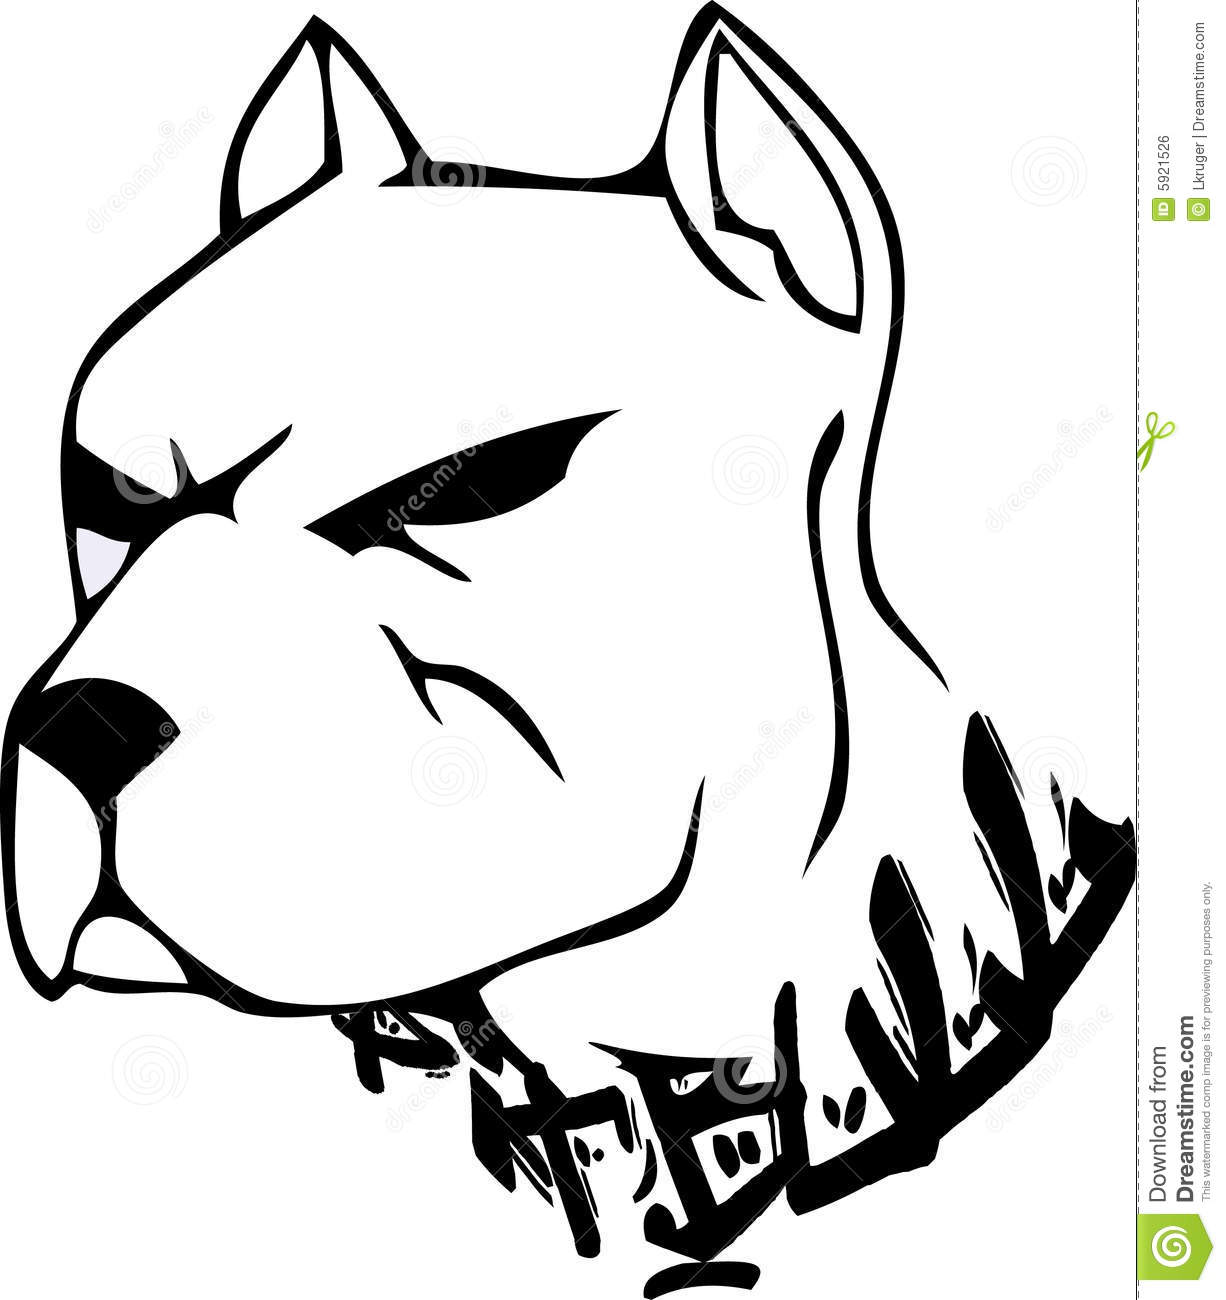 194977 likewise Coloring Pages Hello Kitty as well Stock Illustration English Bulldog Face Vector Illustration Image63344801 moreover DGh1bWI5KnNodXR0ZXJzdG9jaypjb218ZGlzcGxheV9waWNfd2l0aF9sb2dvfDU0ODM0NHw1NDgzNDQxMzMxNTQxODA3MnxzdG9jay12ZWN0b3ItYnVsbGRvZy1oZWFkLWFuZ3J5LWJ1bGxkb2ctYnVsbGRvZy12ZWN0b3ItaWxsdXN0cmF0aW9uL 3MzYyMzc0Km Zw c2h1dHRlcnN0b2NrKmNvbXxzfGJ1bGxkb2d8c2VhcmNoKmh0bWw as well Royalty Free Stock Image Bulldog Design Image5921526. on bully dog pictures